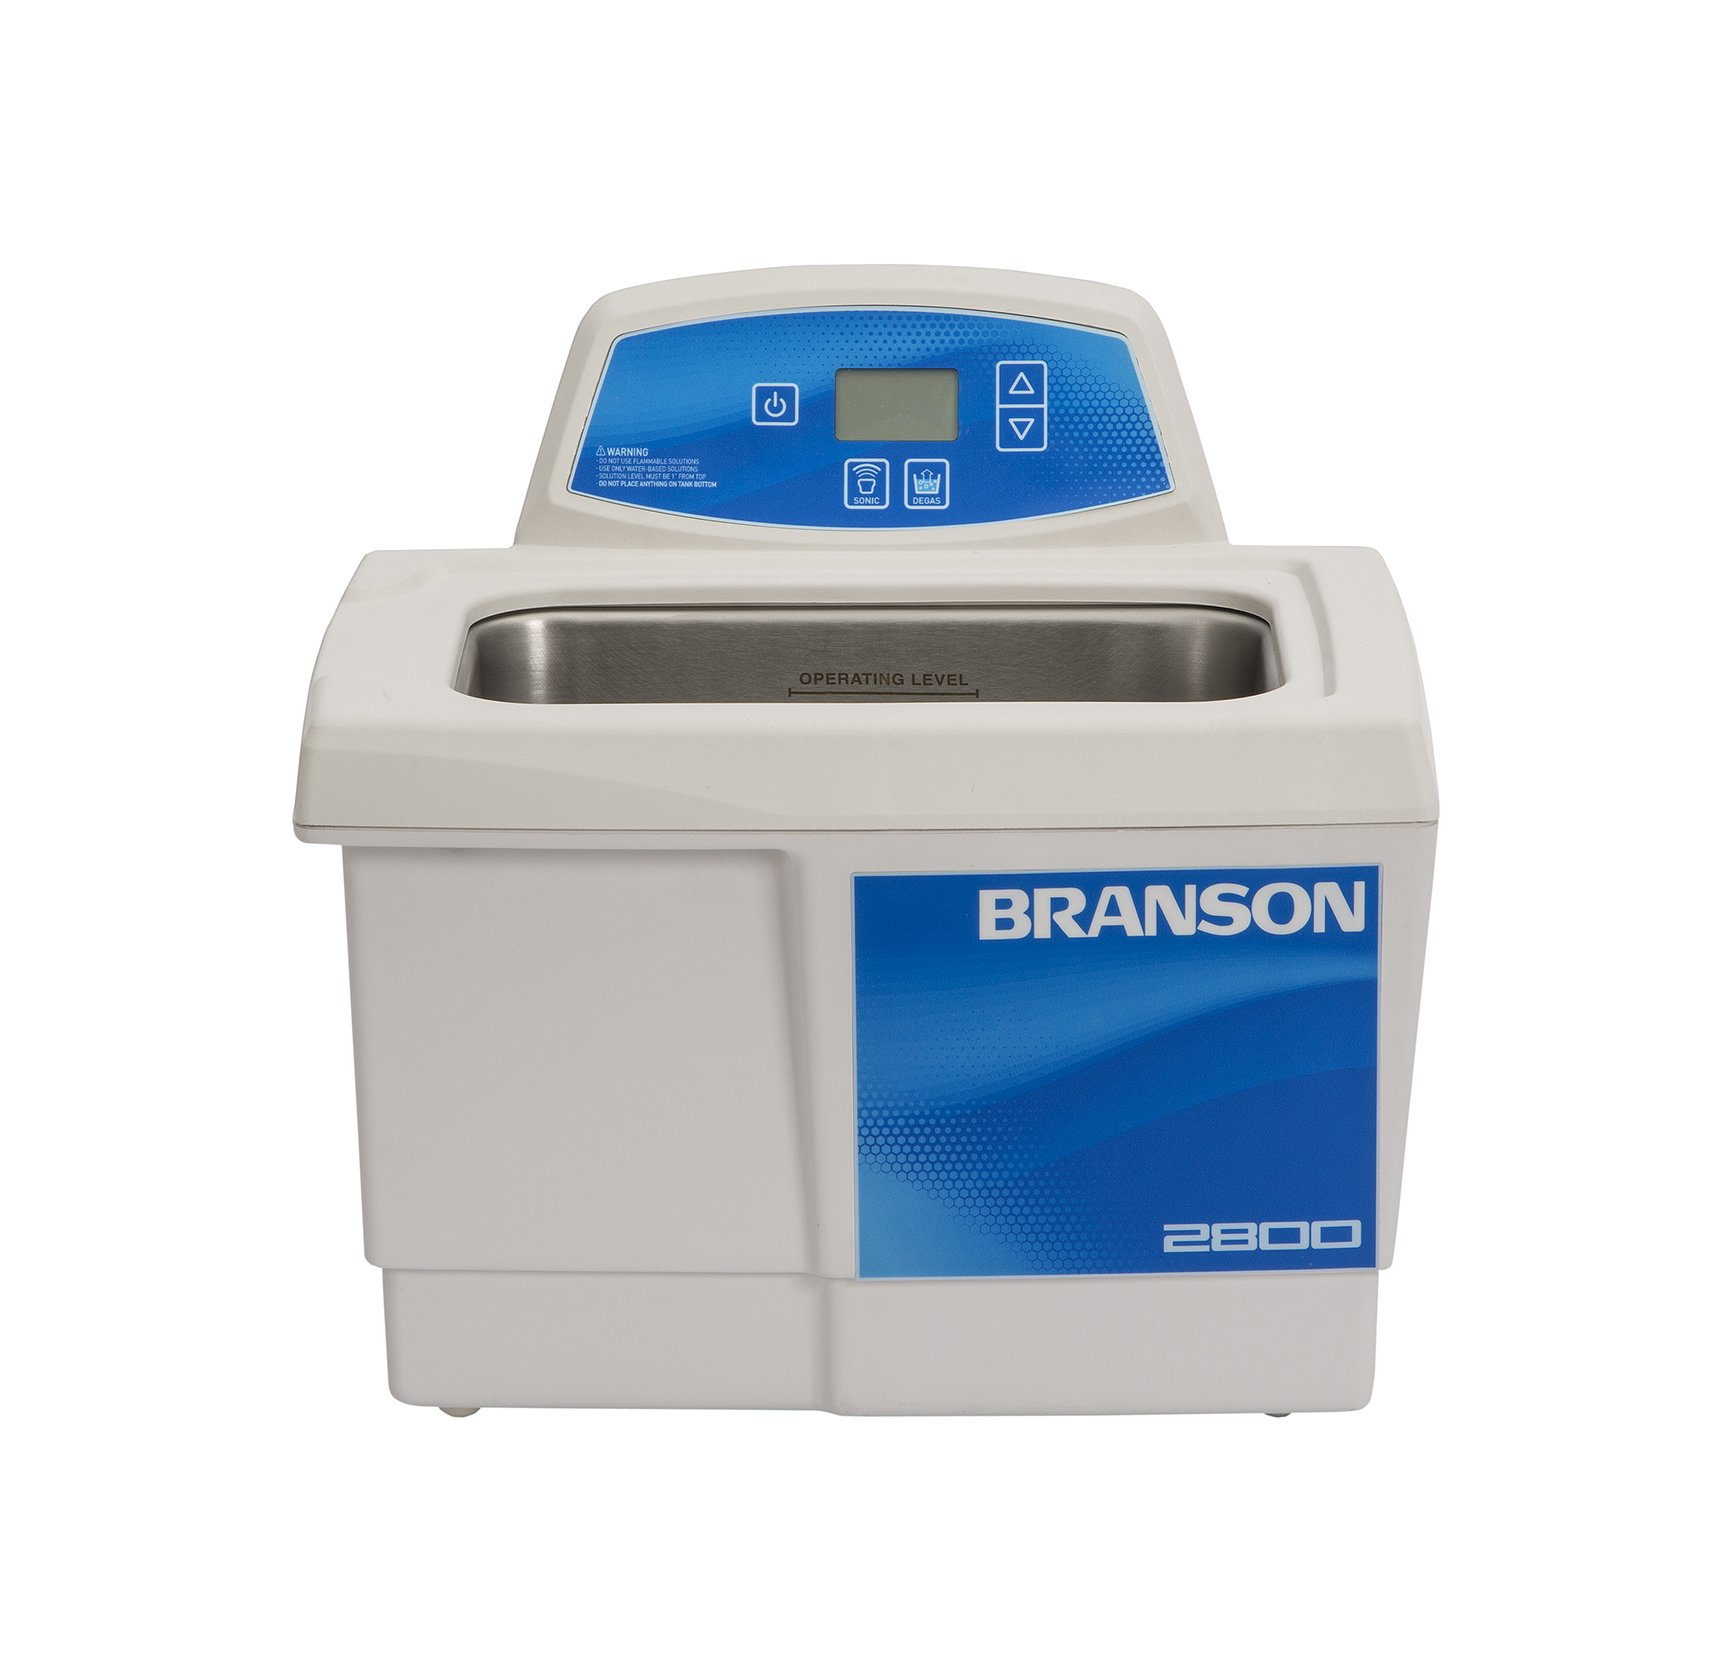 Branson CPX-952-219R Series CPX Digital Cleaning Bath with Digital Timer, 0.75 Gallons Capacity, 120V